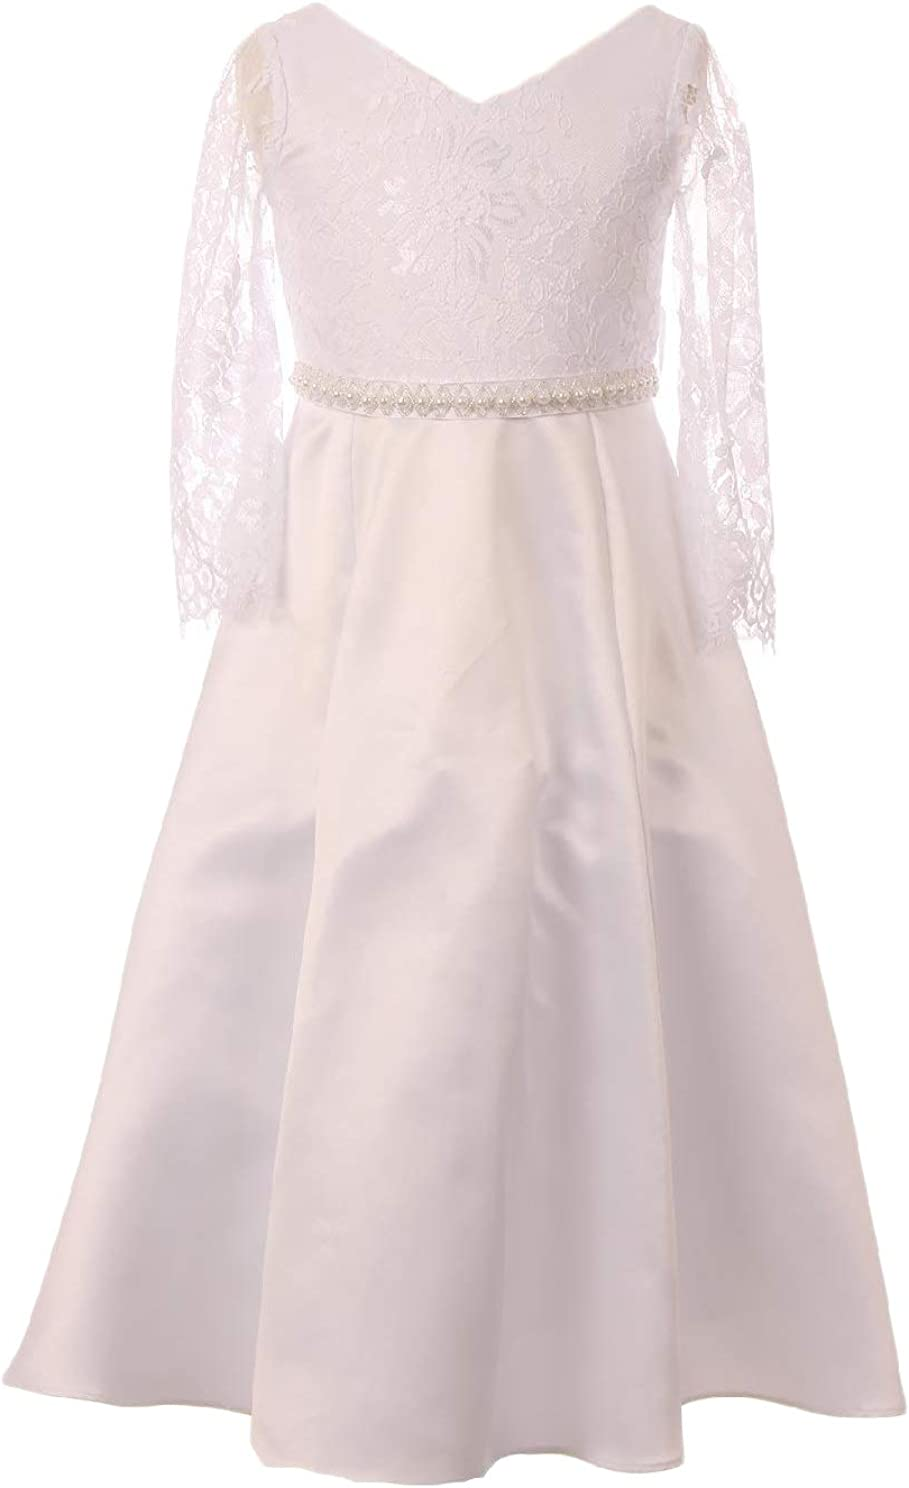 New Flower Girls White Dress First Communion Wedding Party Christmas Easter